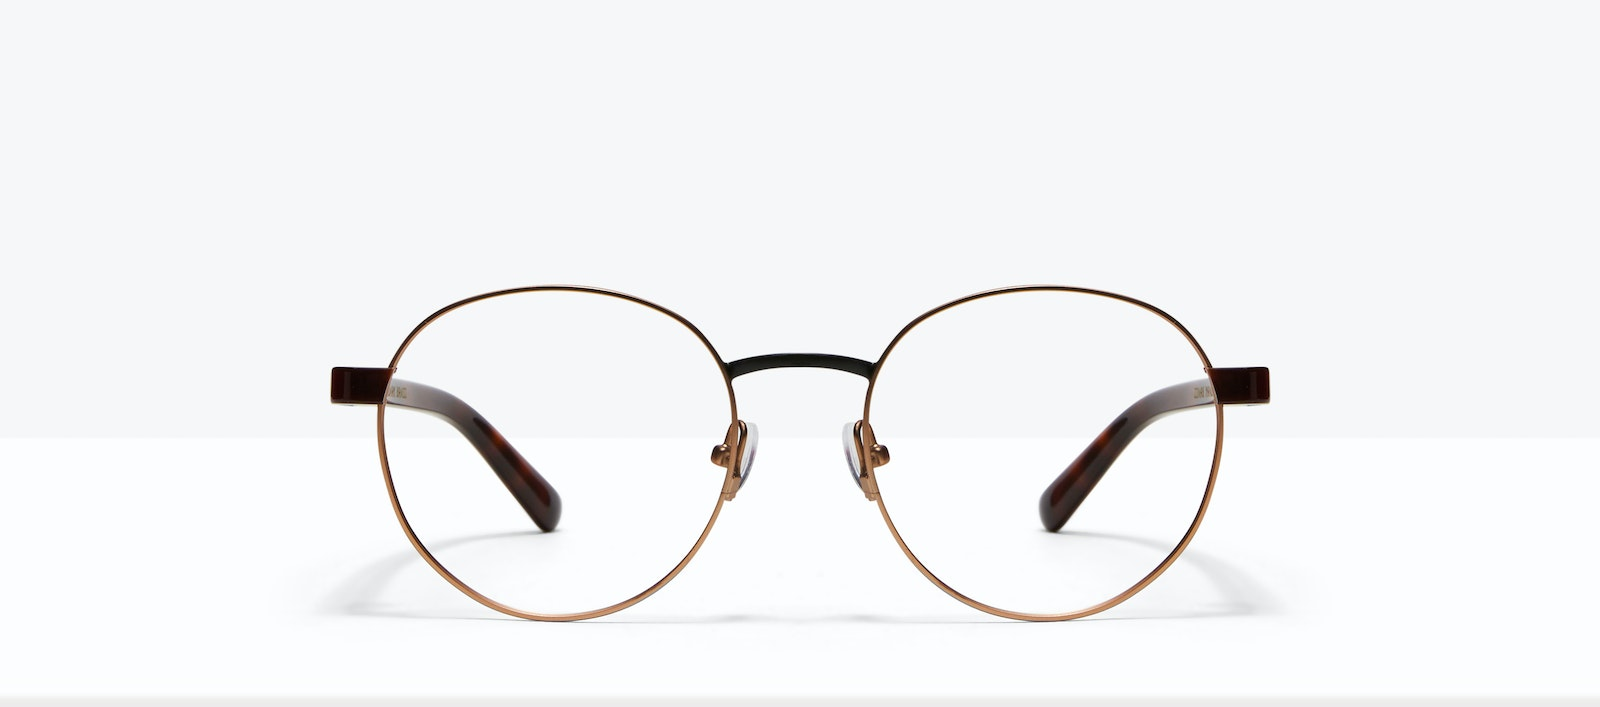 Affordable Fashion Glasses Round Eyeglasses Men Alter Dark Brass Front